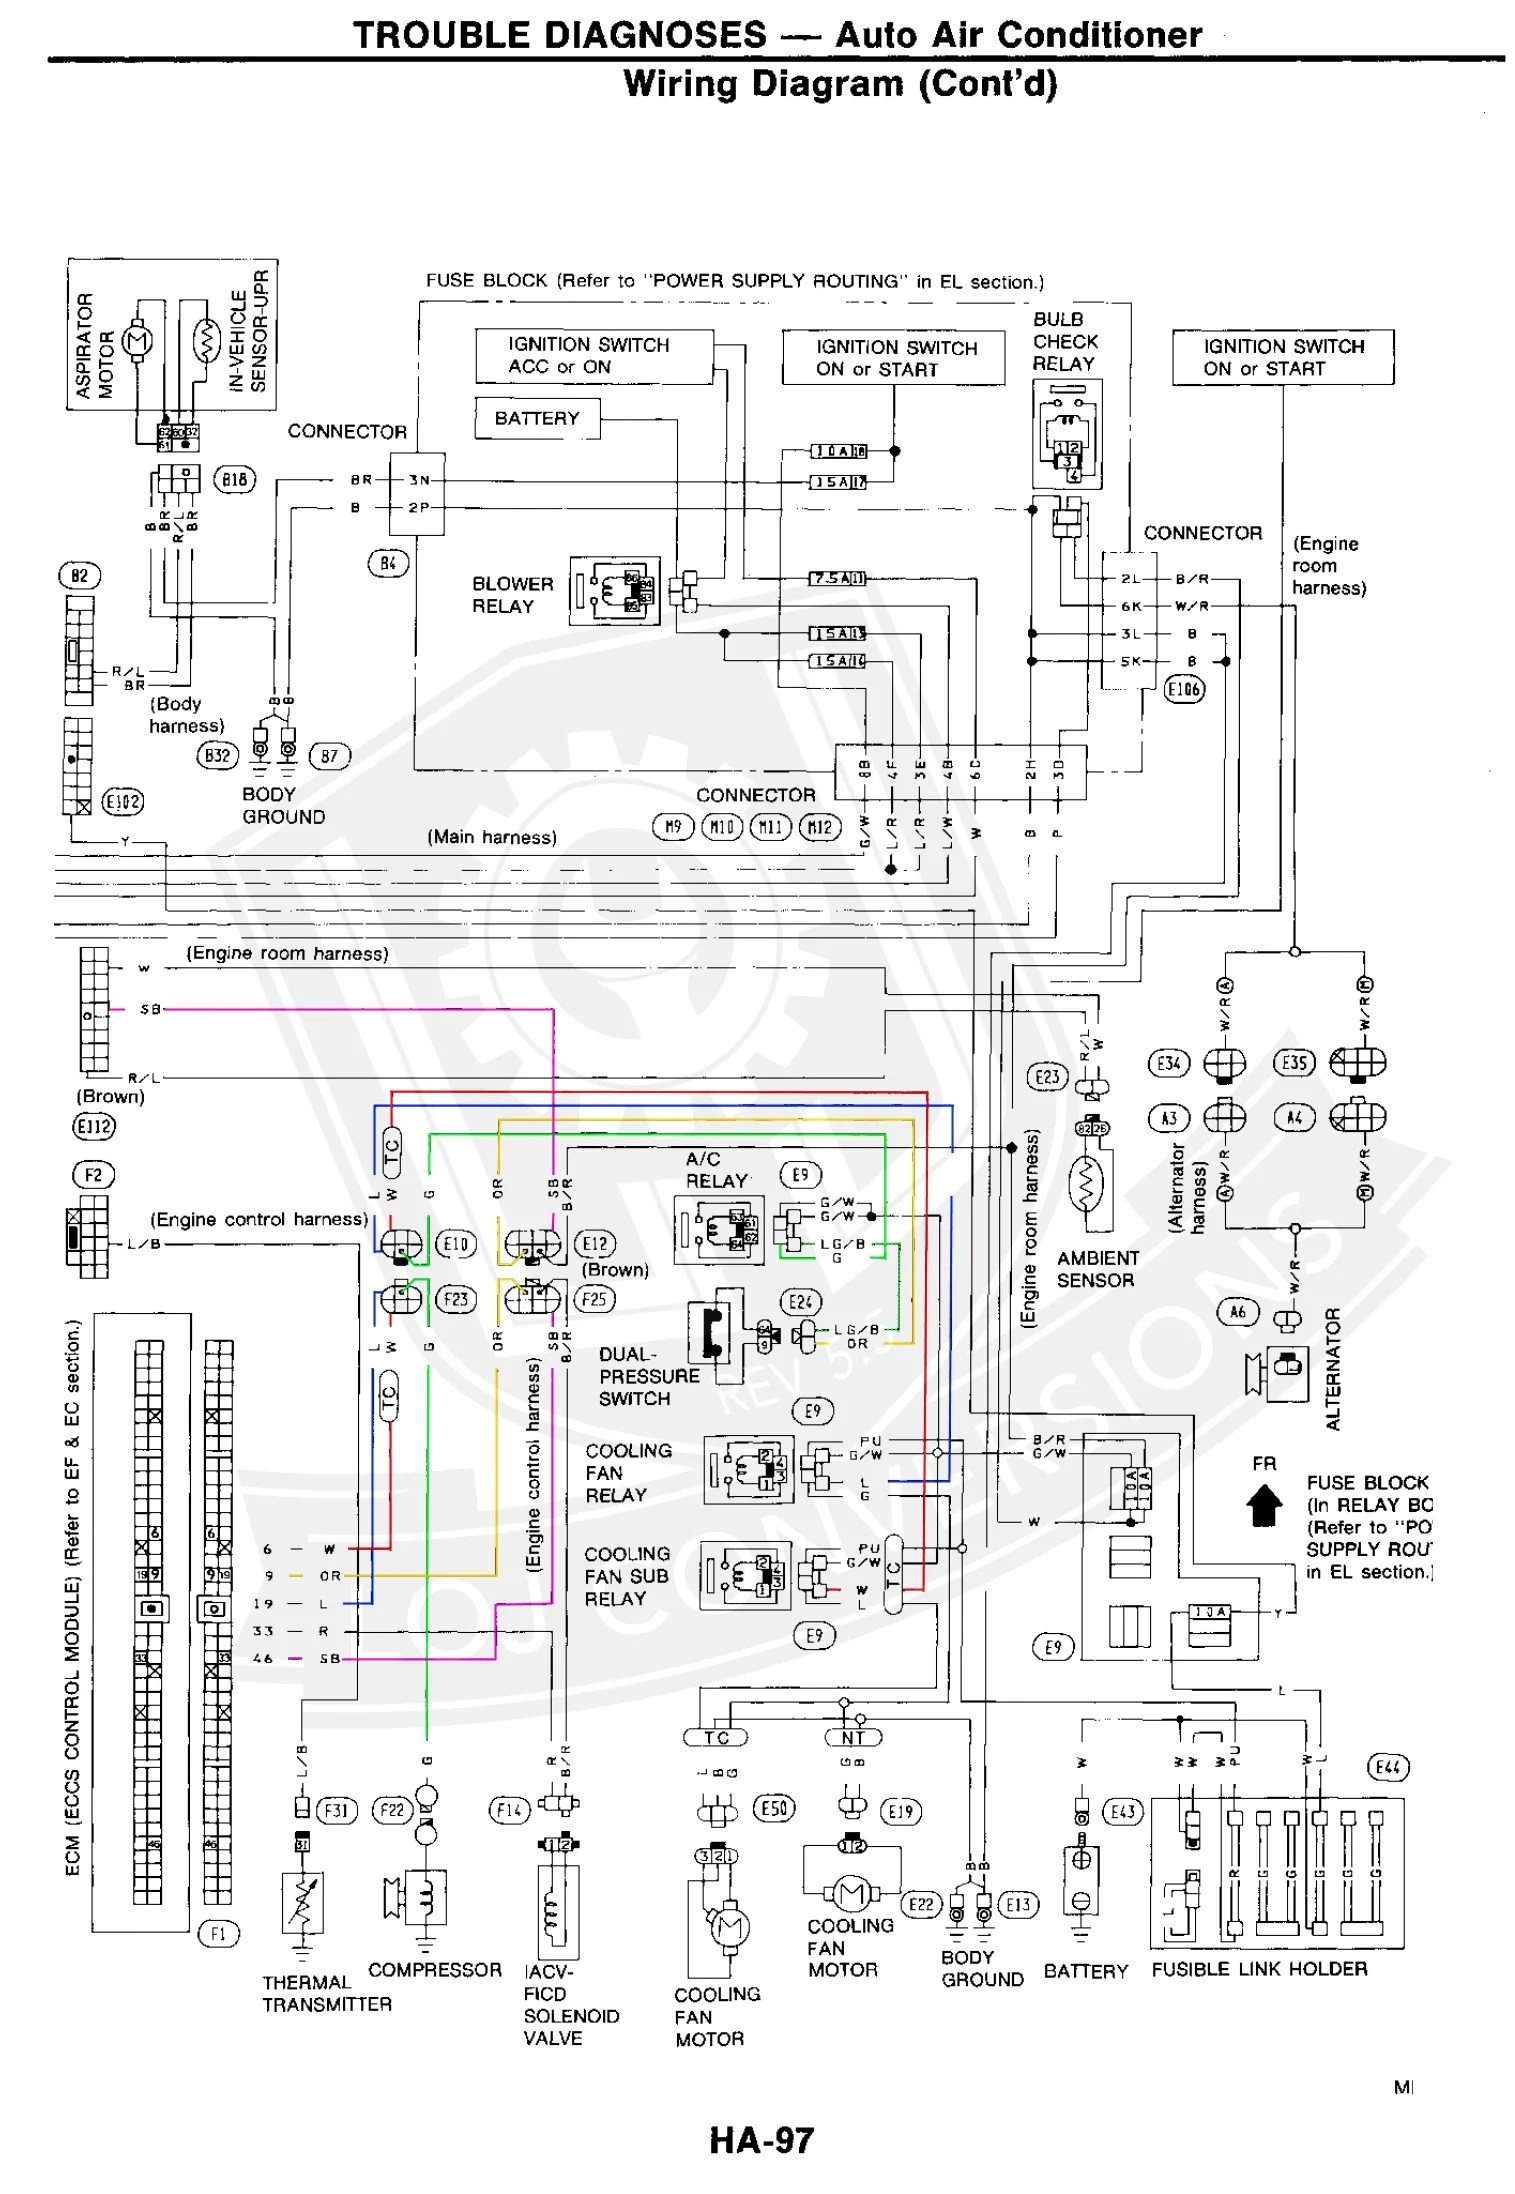 medium resolution of 91 na 300zx fuse box wiring diagram expert 1990 nissan 300zx fuse panel diagram wiring schematic